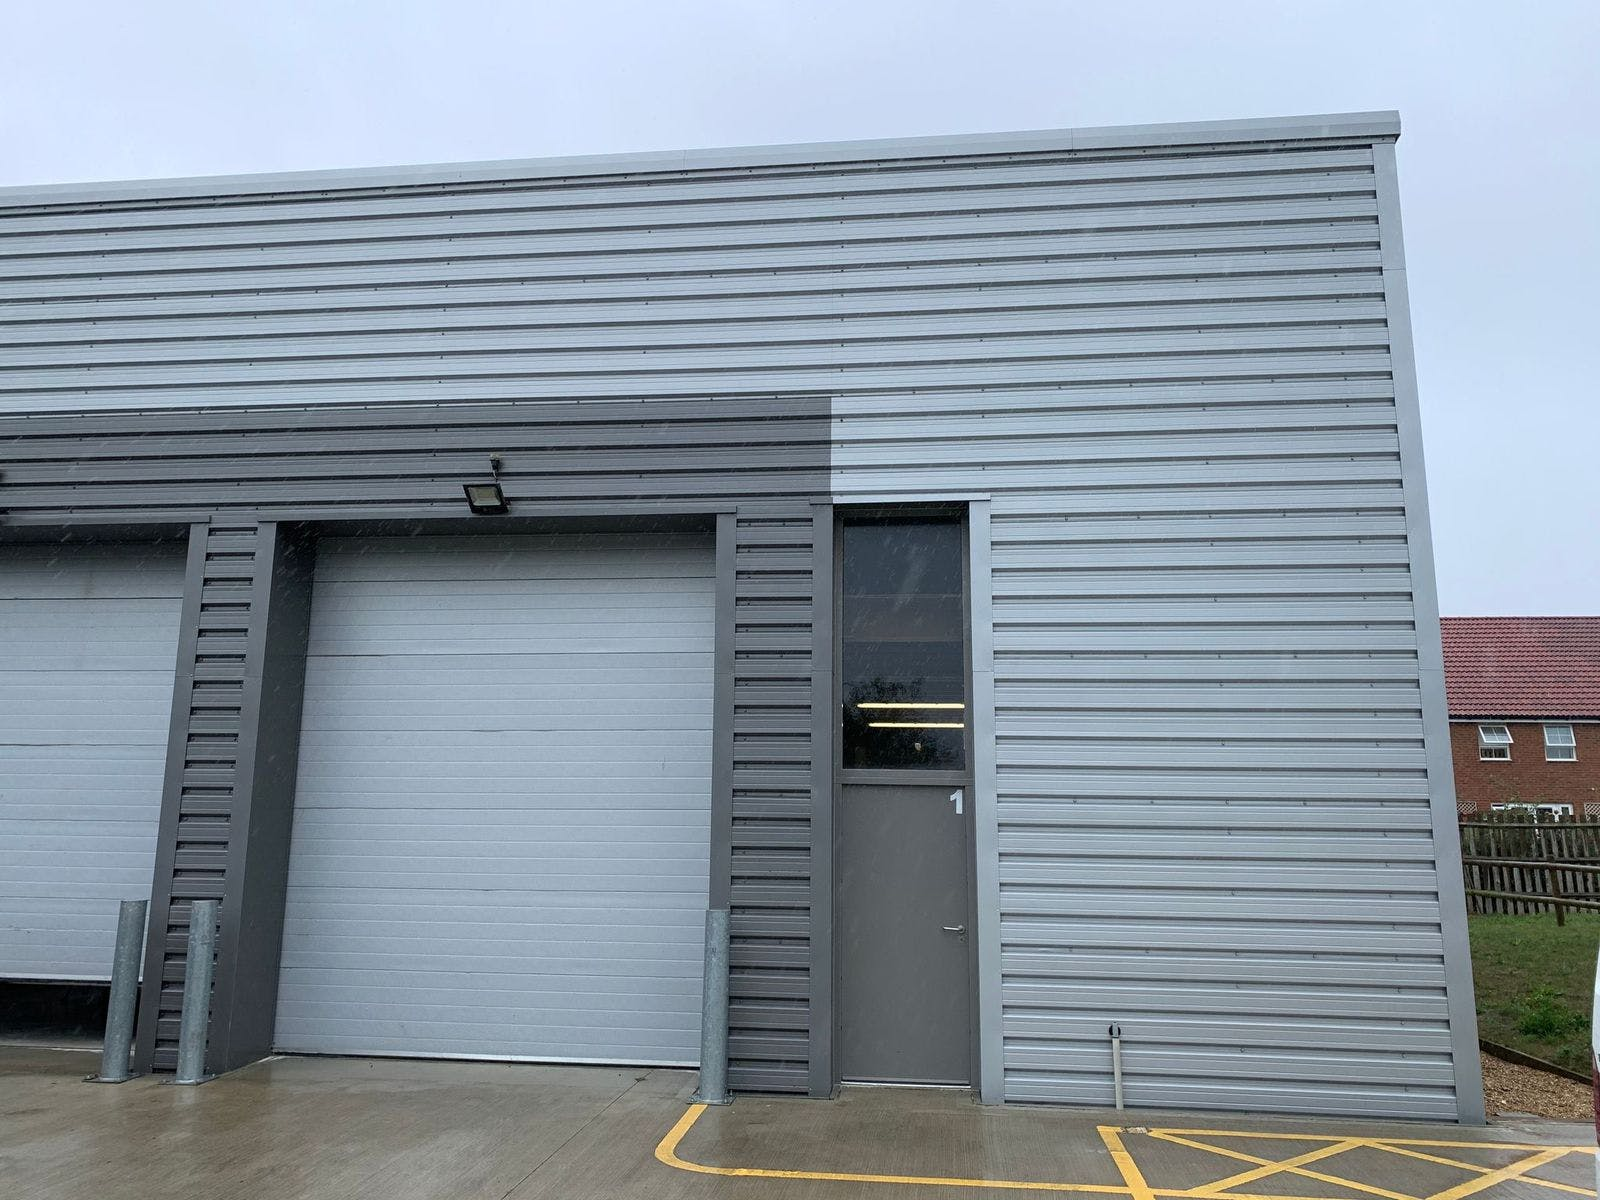 Furniss Business Centre, Unit 1, Hayling Island, Industrial / Warehouse To Let - QY8mm3hA.jpeg